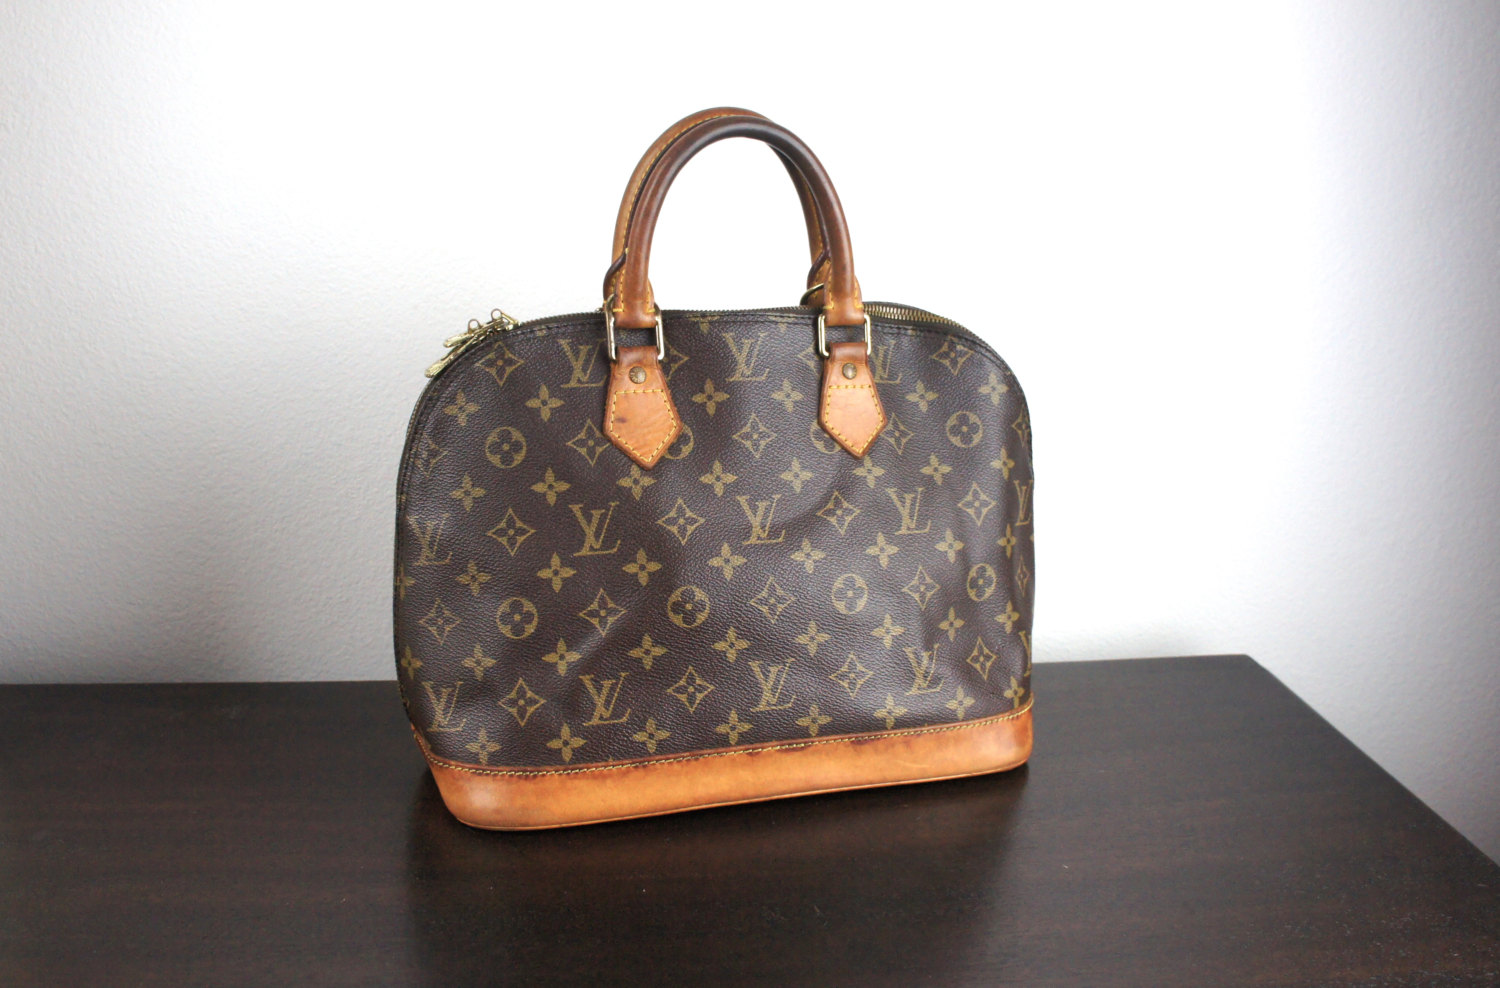 Louis Vuitton clipart alma Tan Bag this Vuitton PM